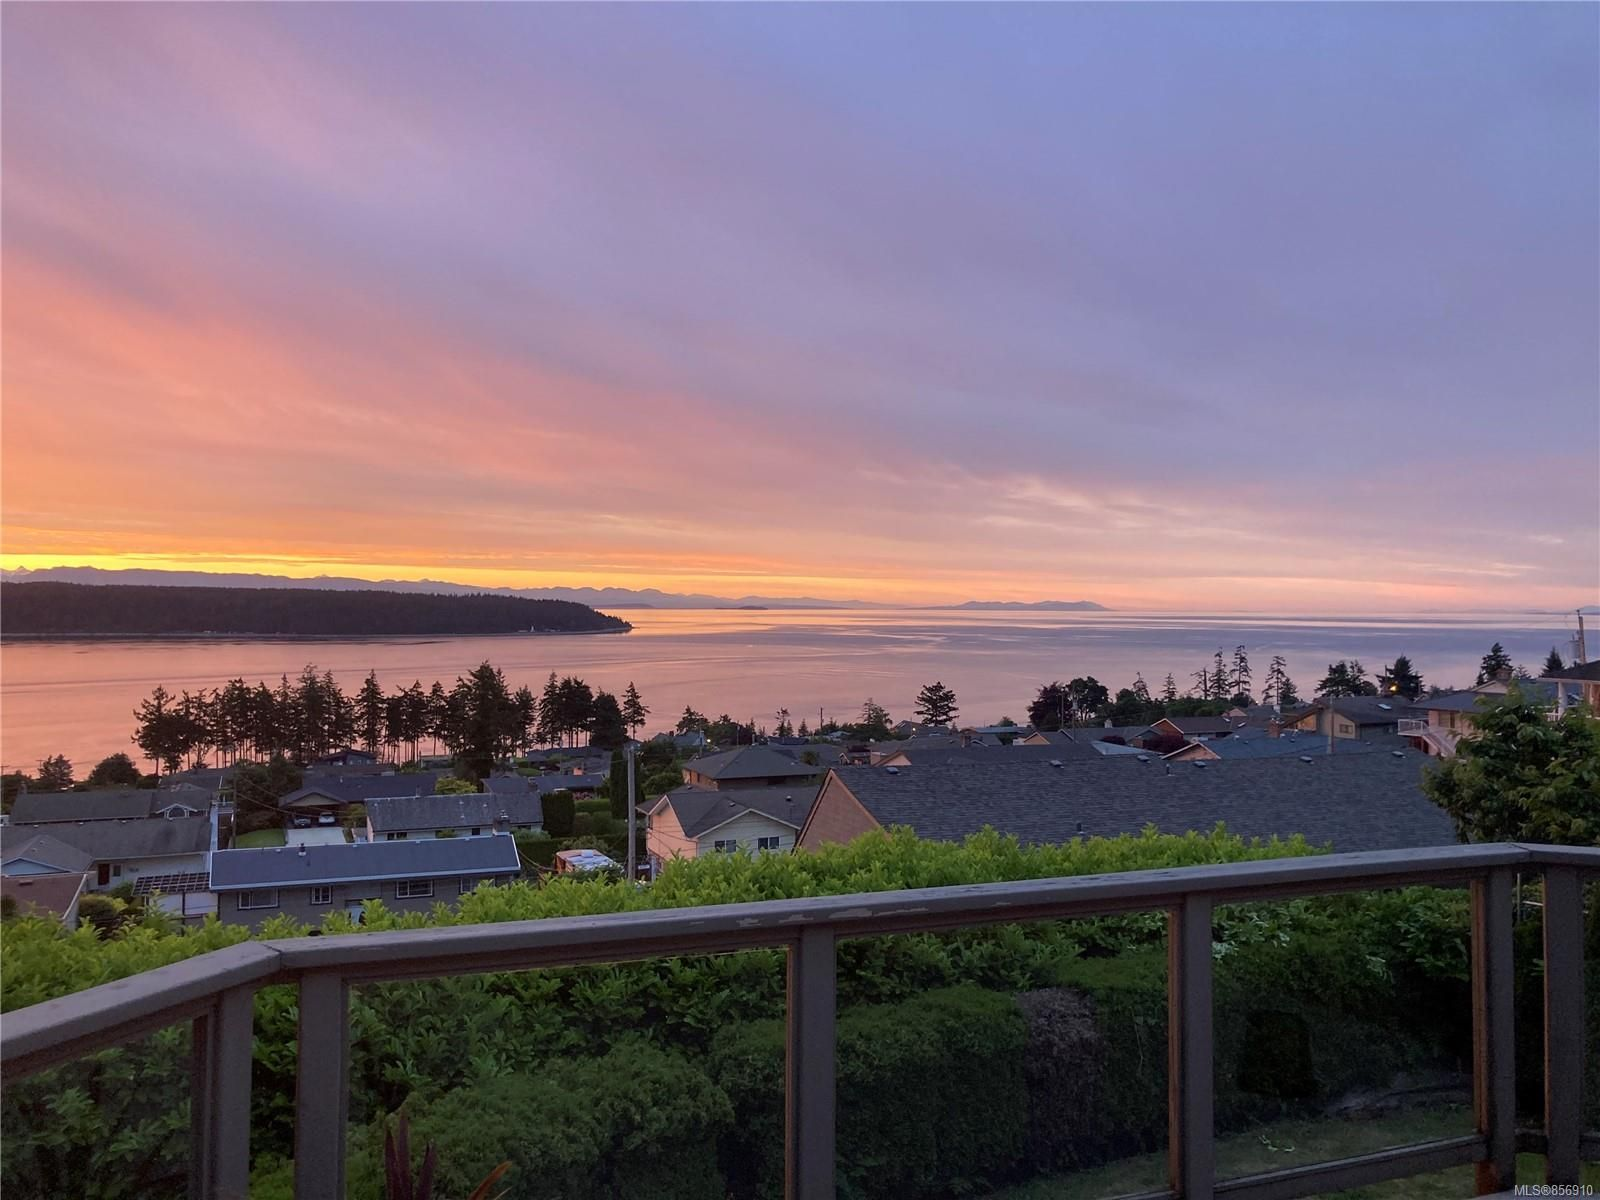 Photo 6: Photos: 215 S Alder St in : CR Campbell River Central House for sale (Campbell River)  : MLS®# 856910